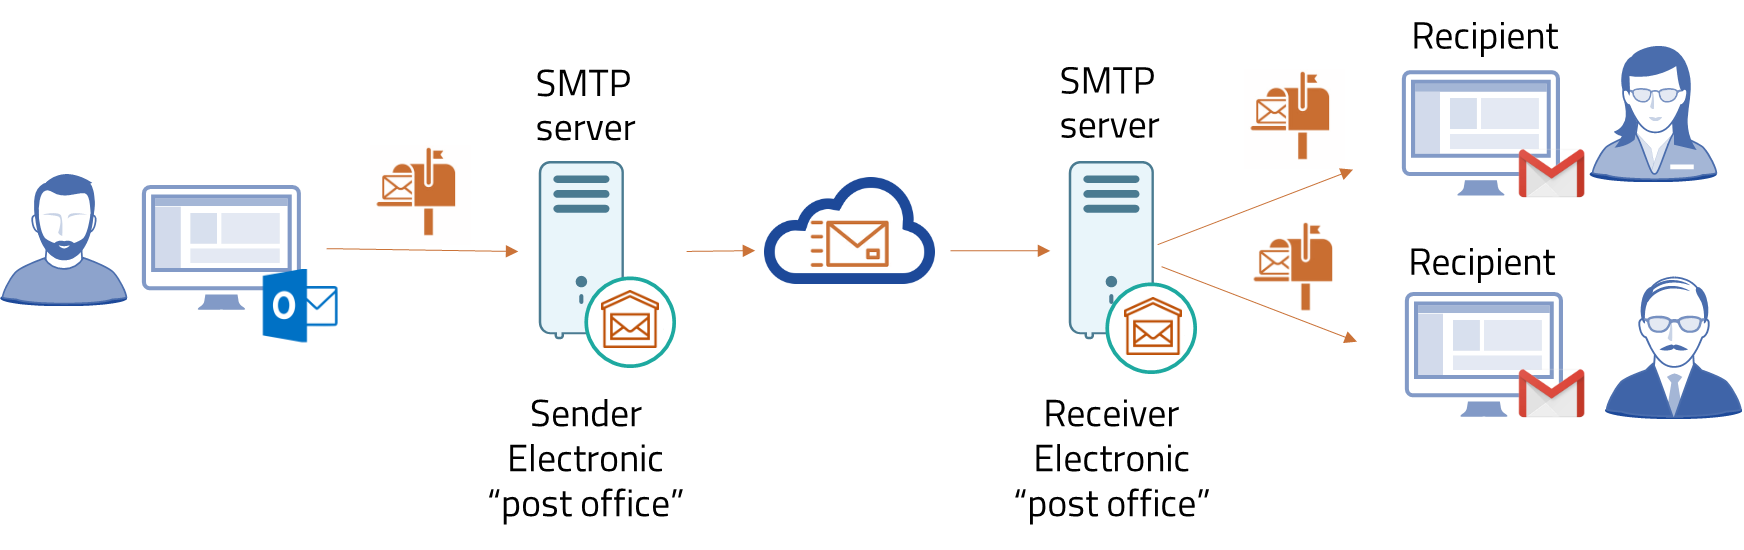 SMT email protocol